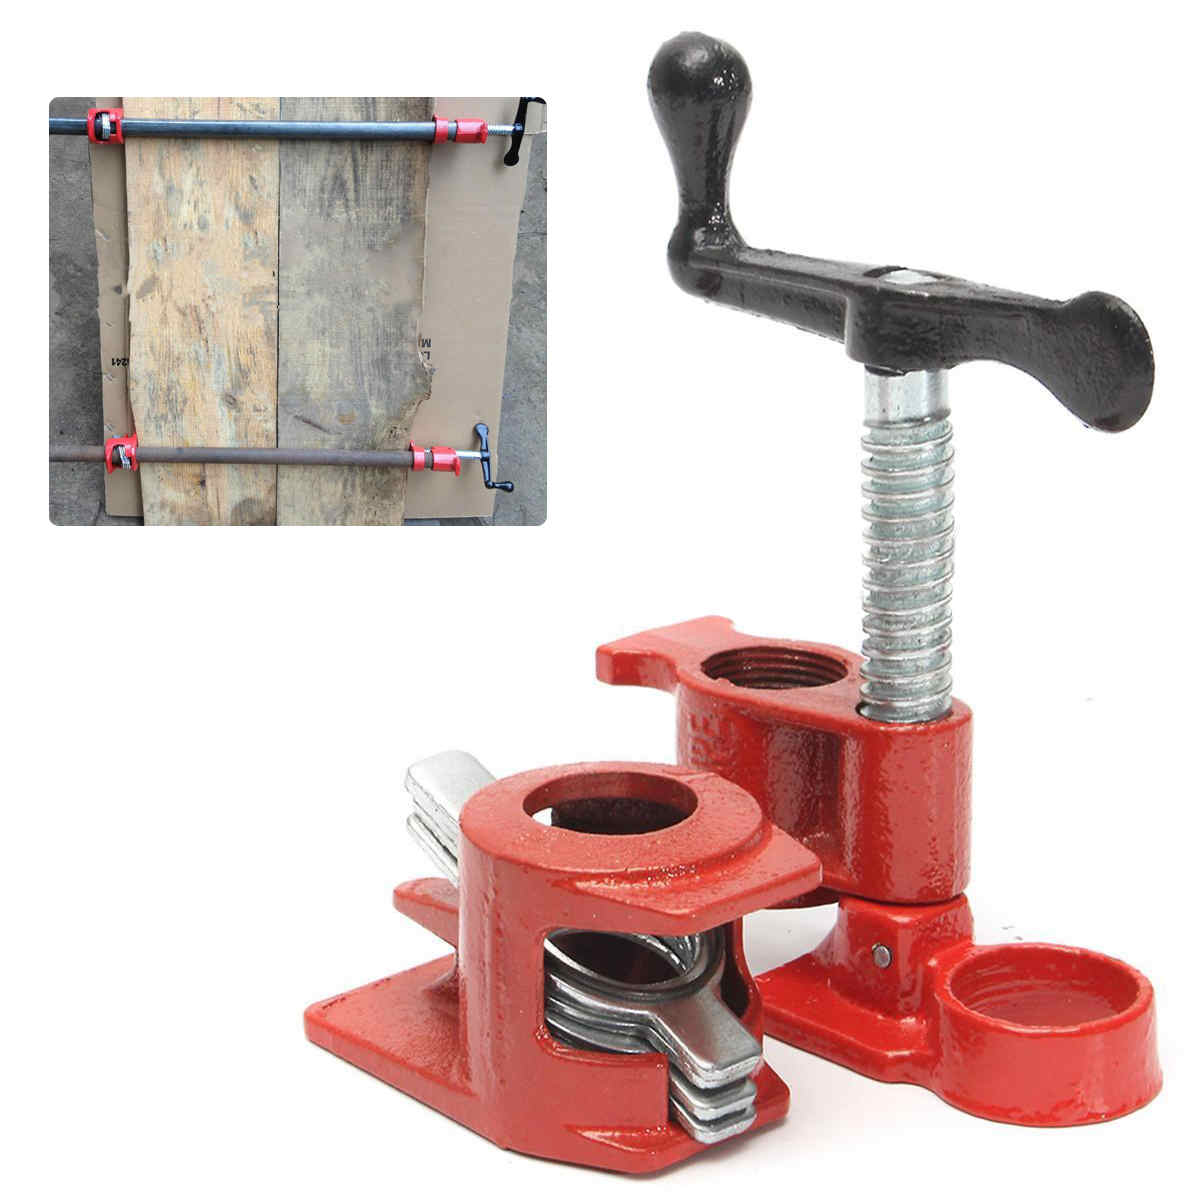 Heavy duty cast iron pipe clamp for wood gluing